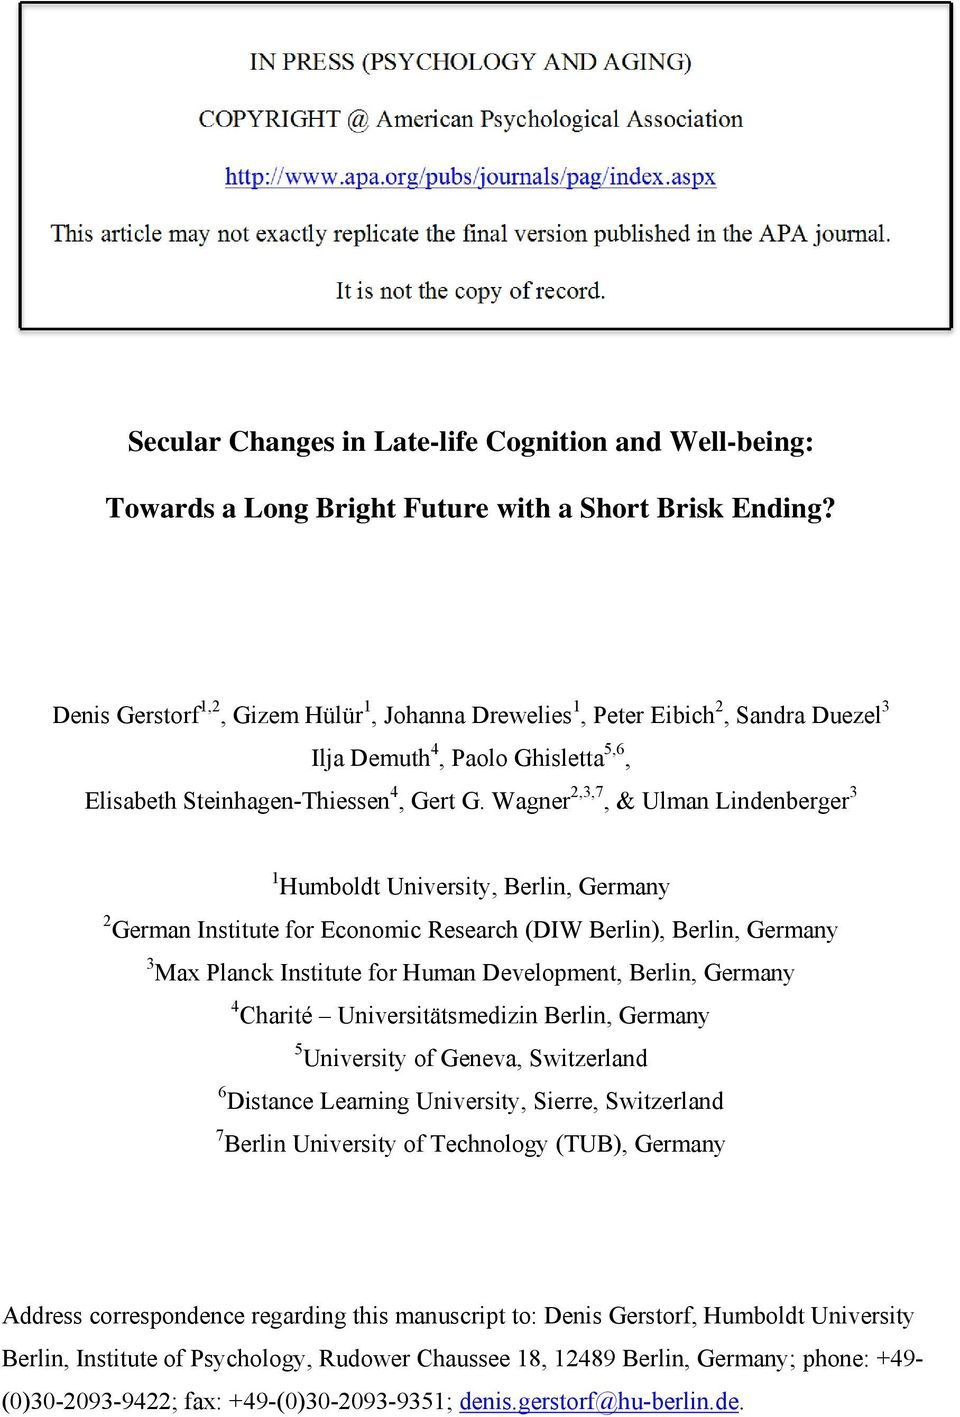 Secular Changes in Late-life Cognition and Well-being: Towards a Long Bright Future with a Short Brisk Ending?